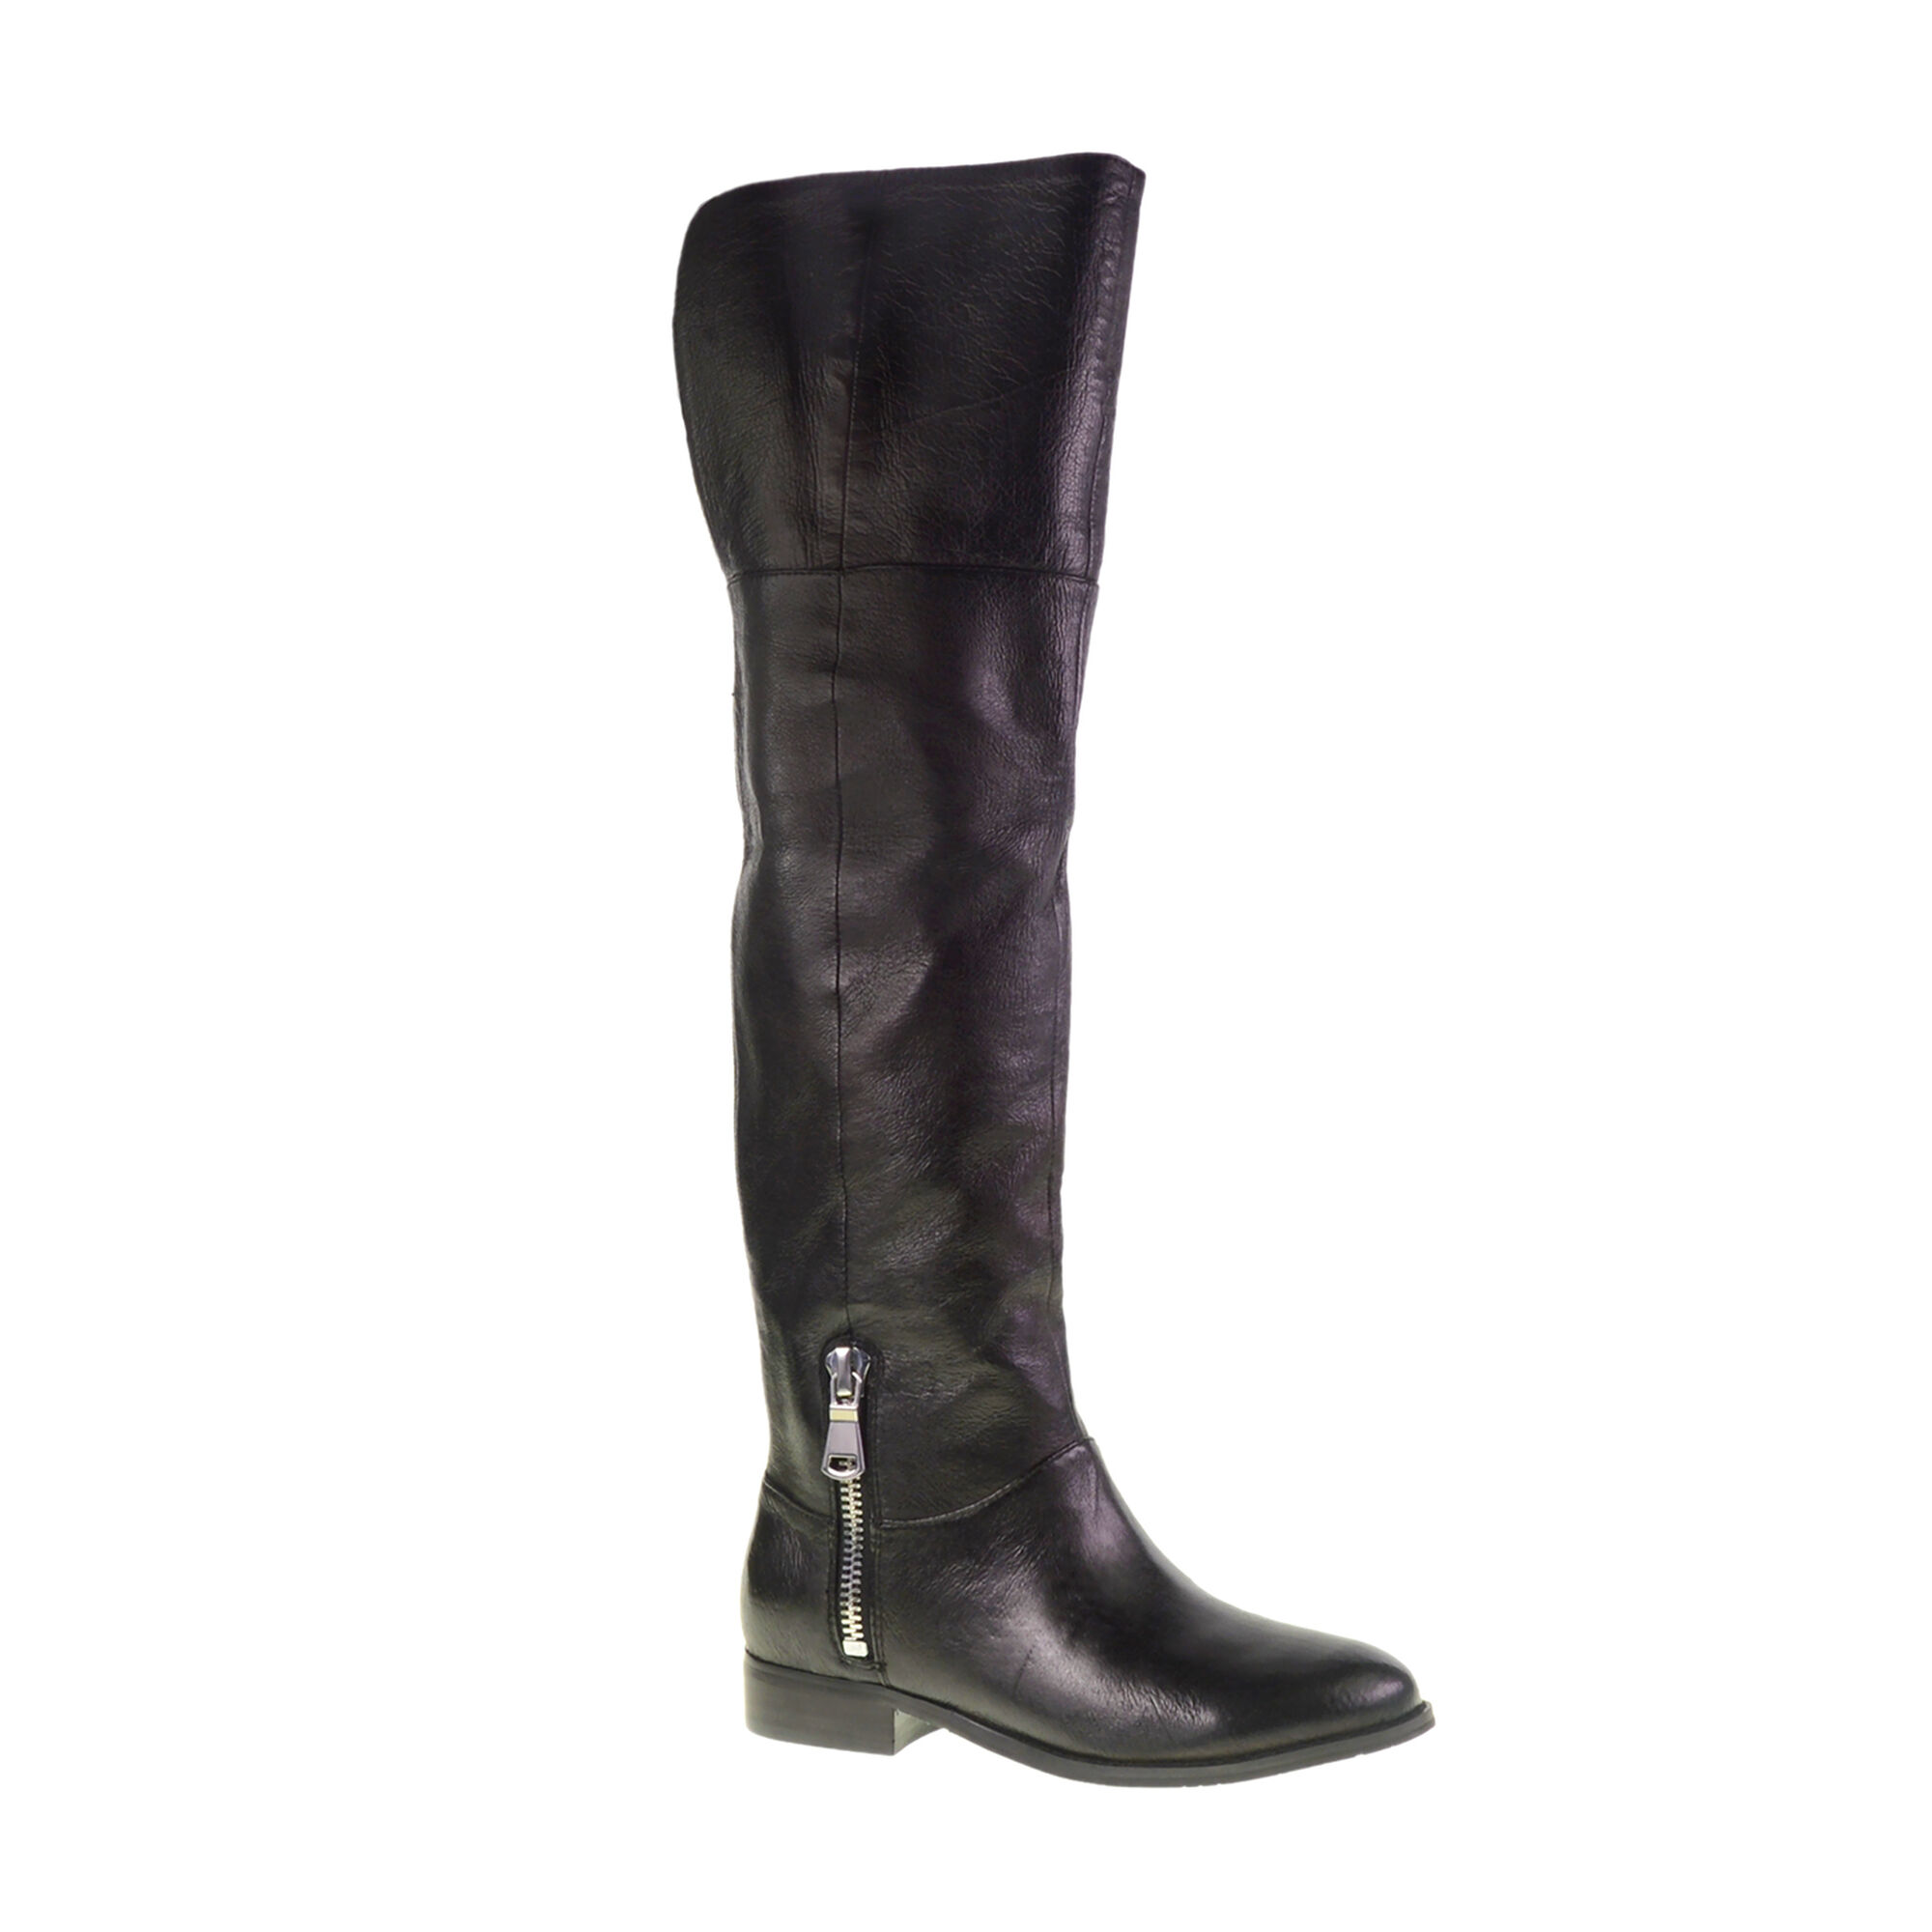 b1dd59e81e733 Chinese Laundry Fawn Leather Riding Boot | Chinese Laundry